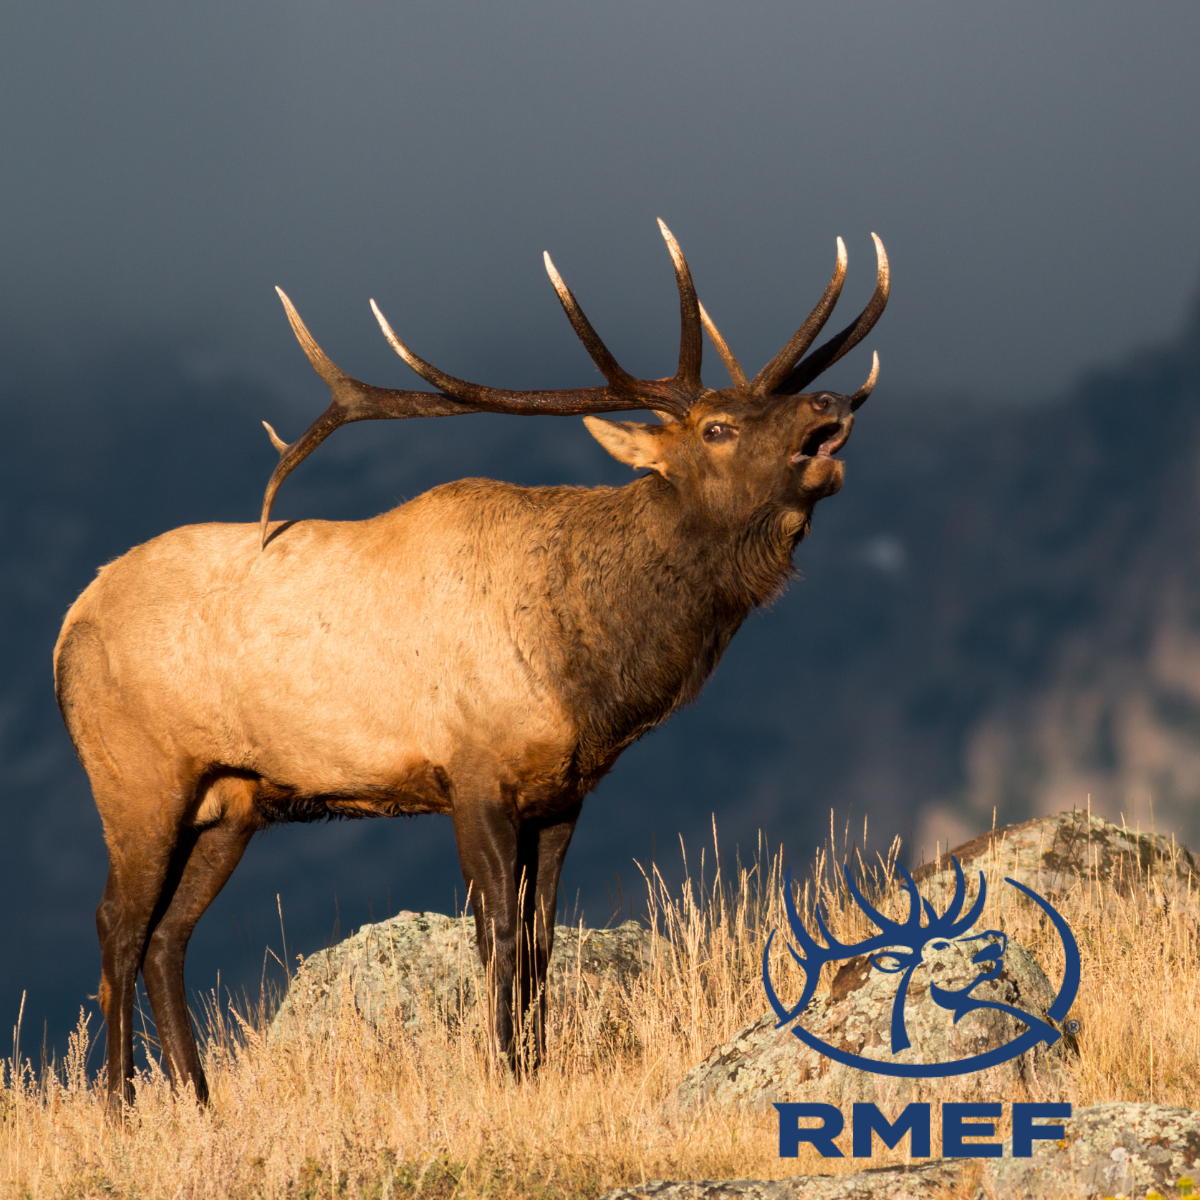 July 10, 2021: Discount Fishing Tackle – Outdoor Buddies – Quick Draw Archery – RMEF Annual Banquet Aug. 28, 2021